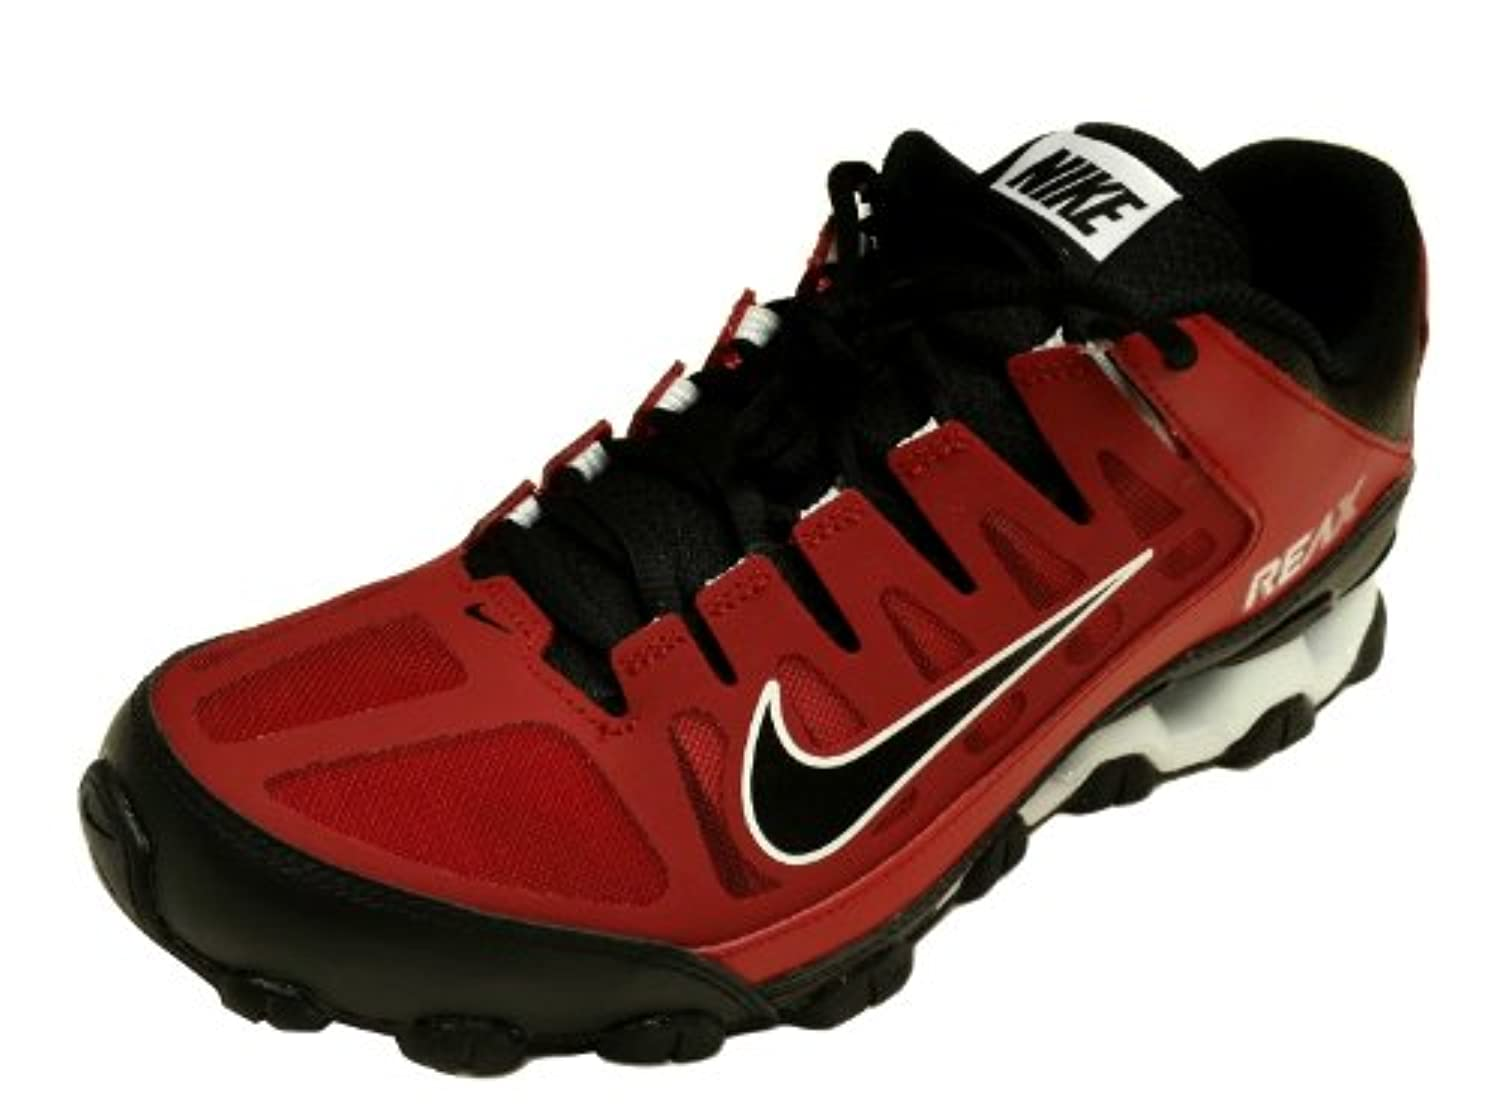 Nike Reax Shoes Review